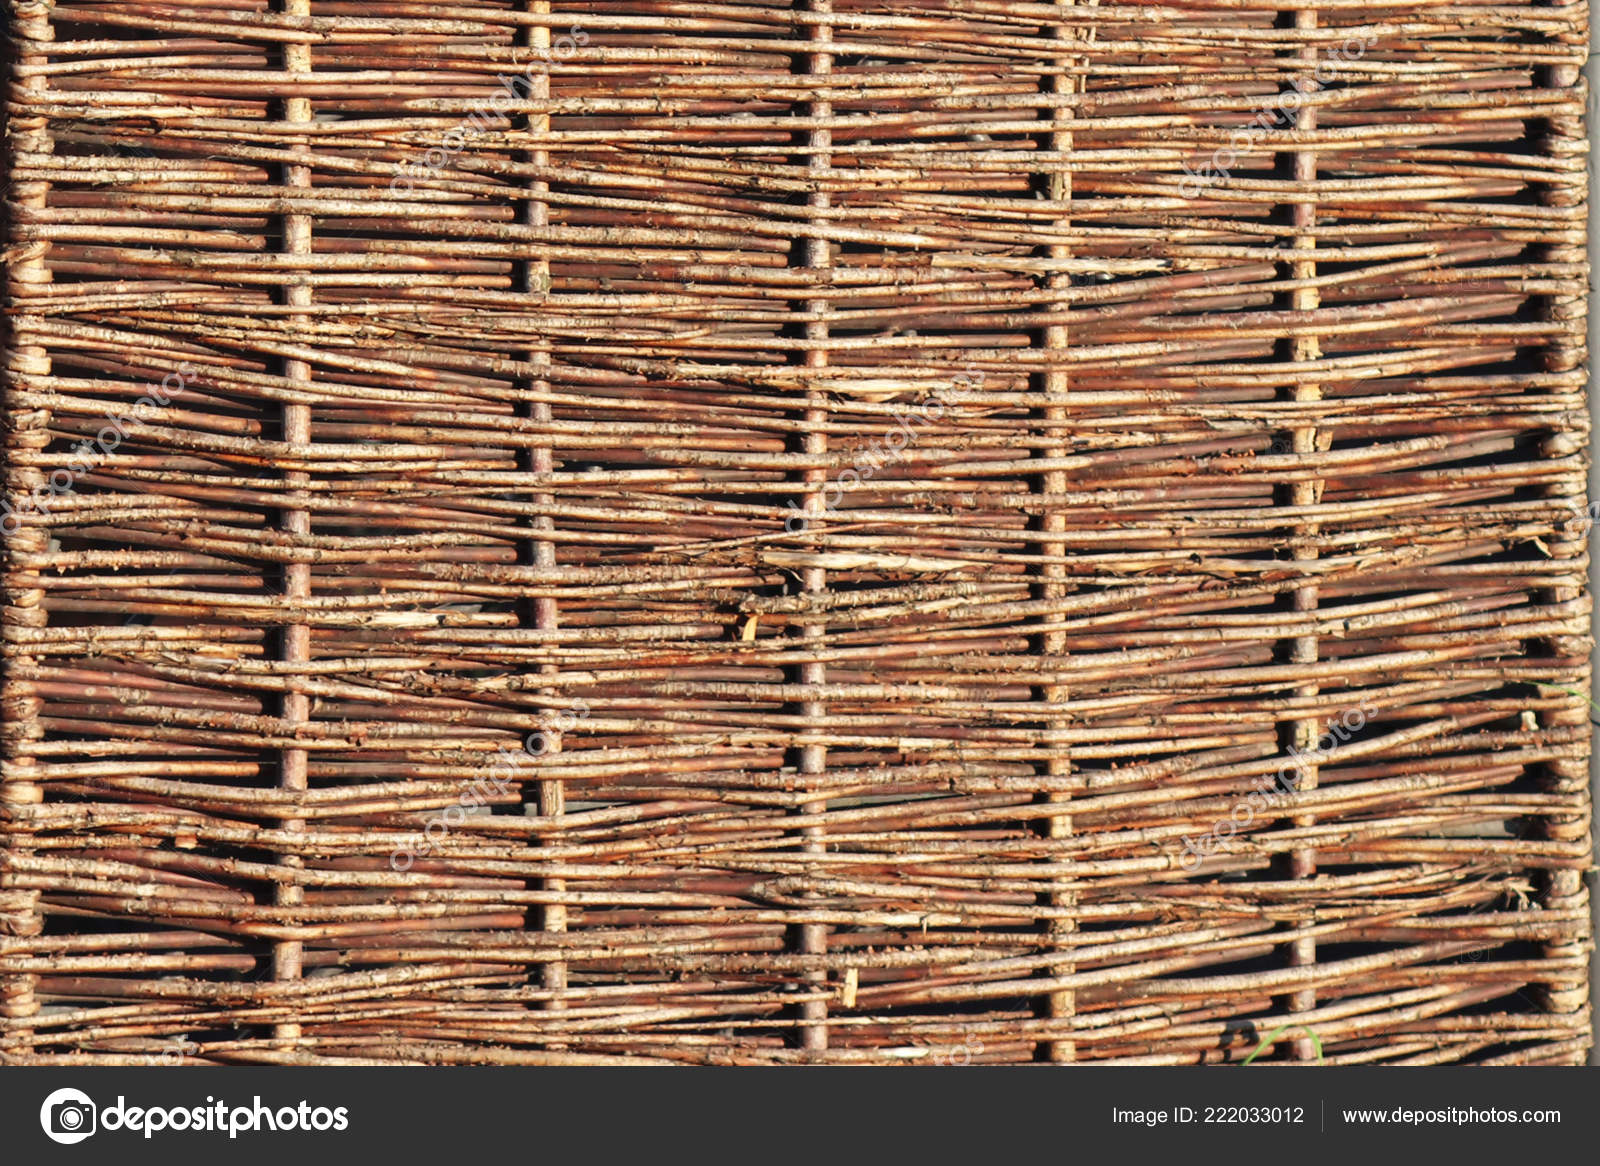 Images Branch Weaving Weaving Willow Branches Background Design Natural Components Handwork Use Natural Stock Photo C Xatolux 222033012